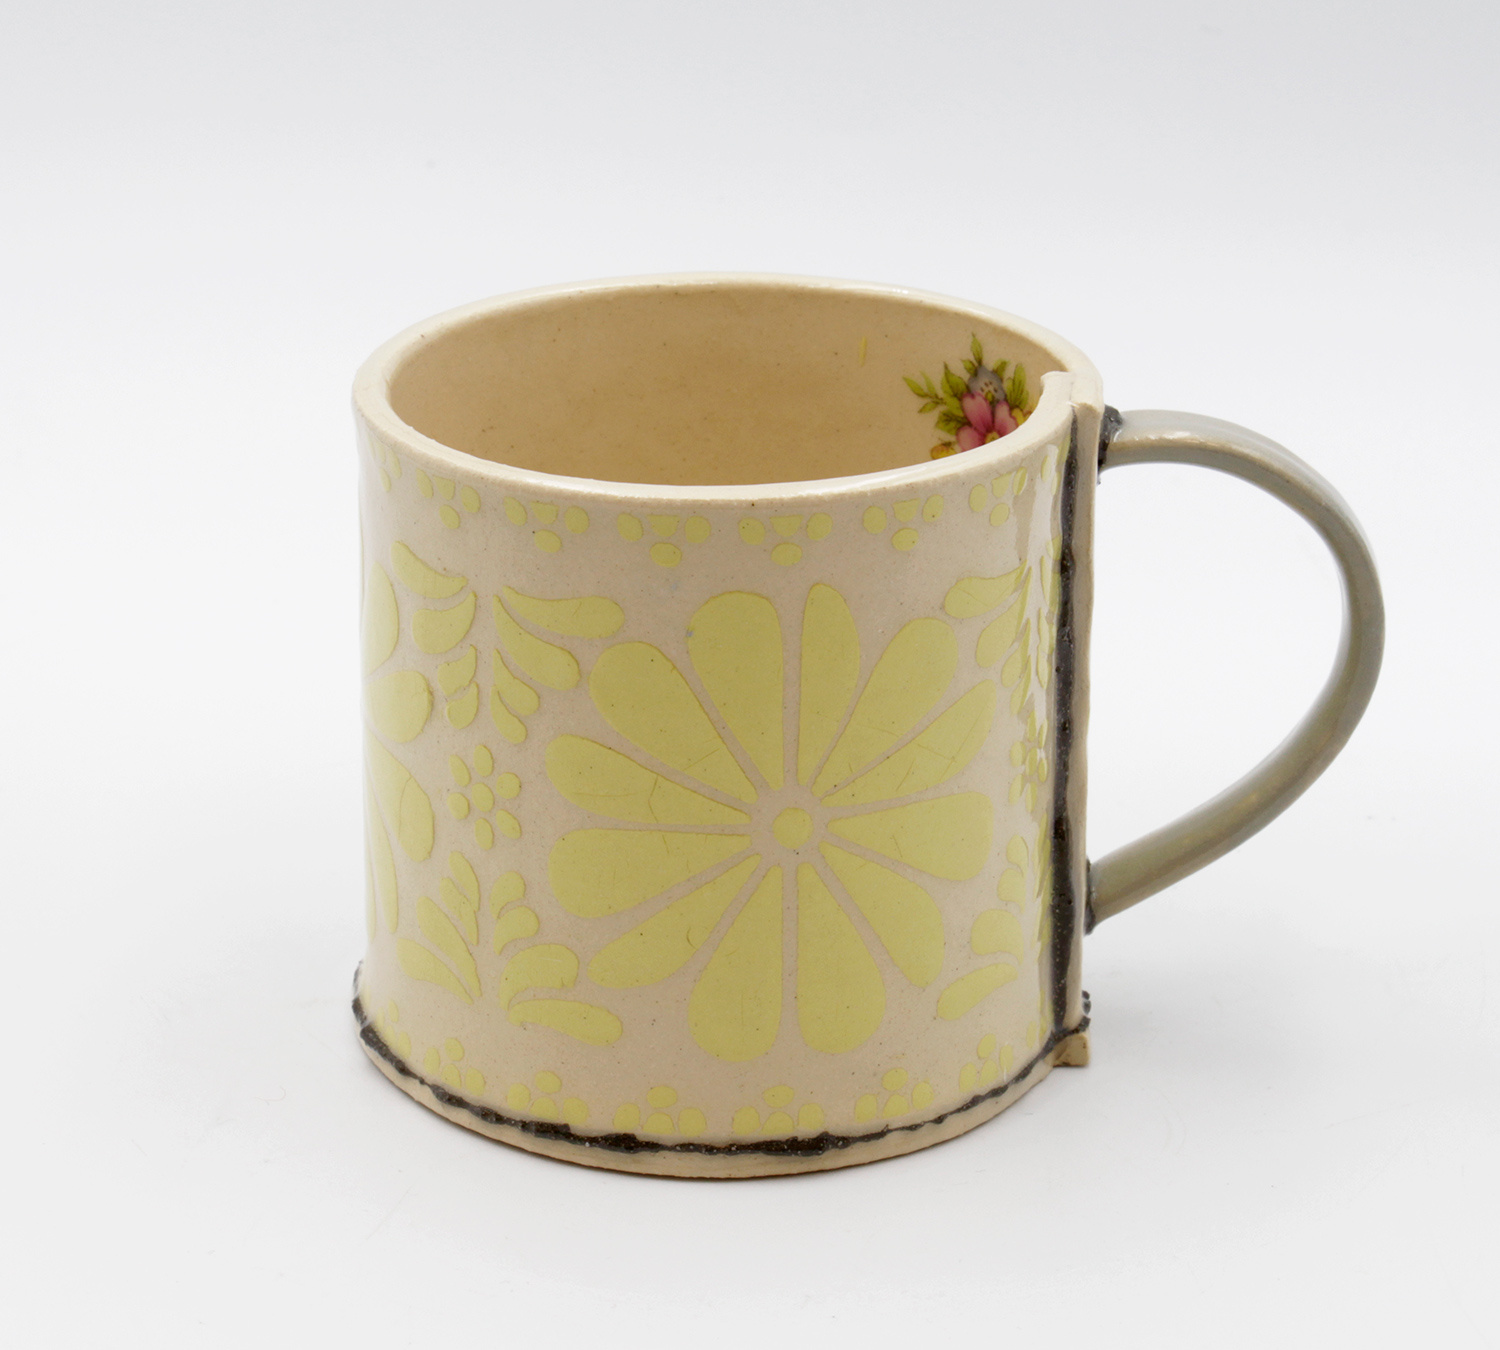 Mug by Virginia Graham